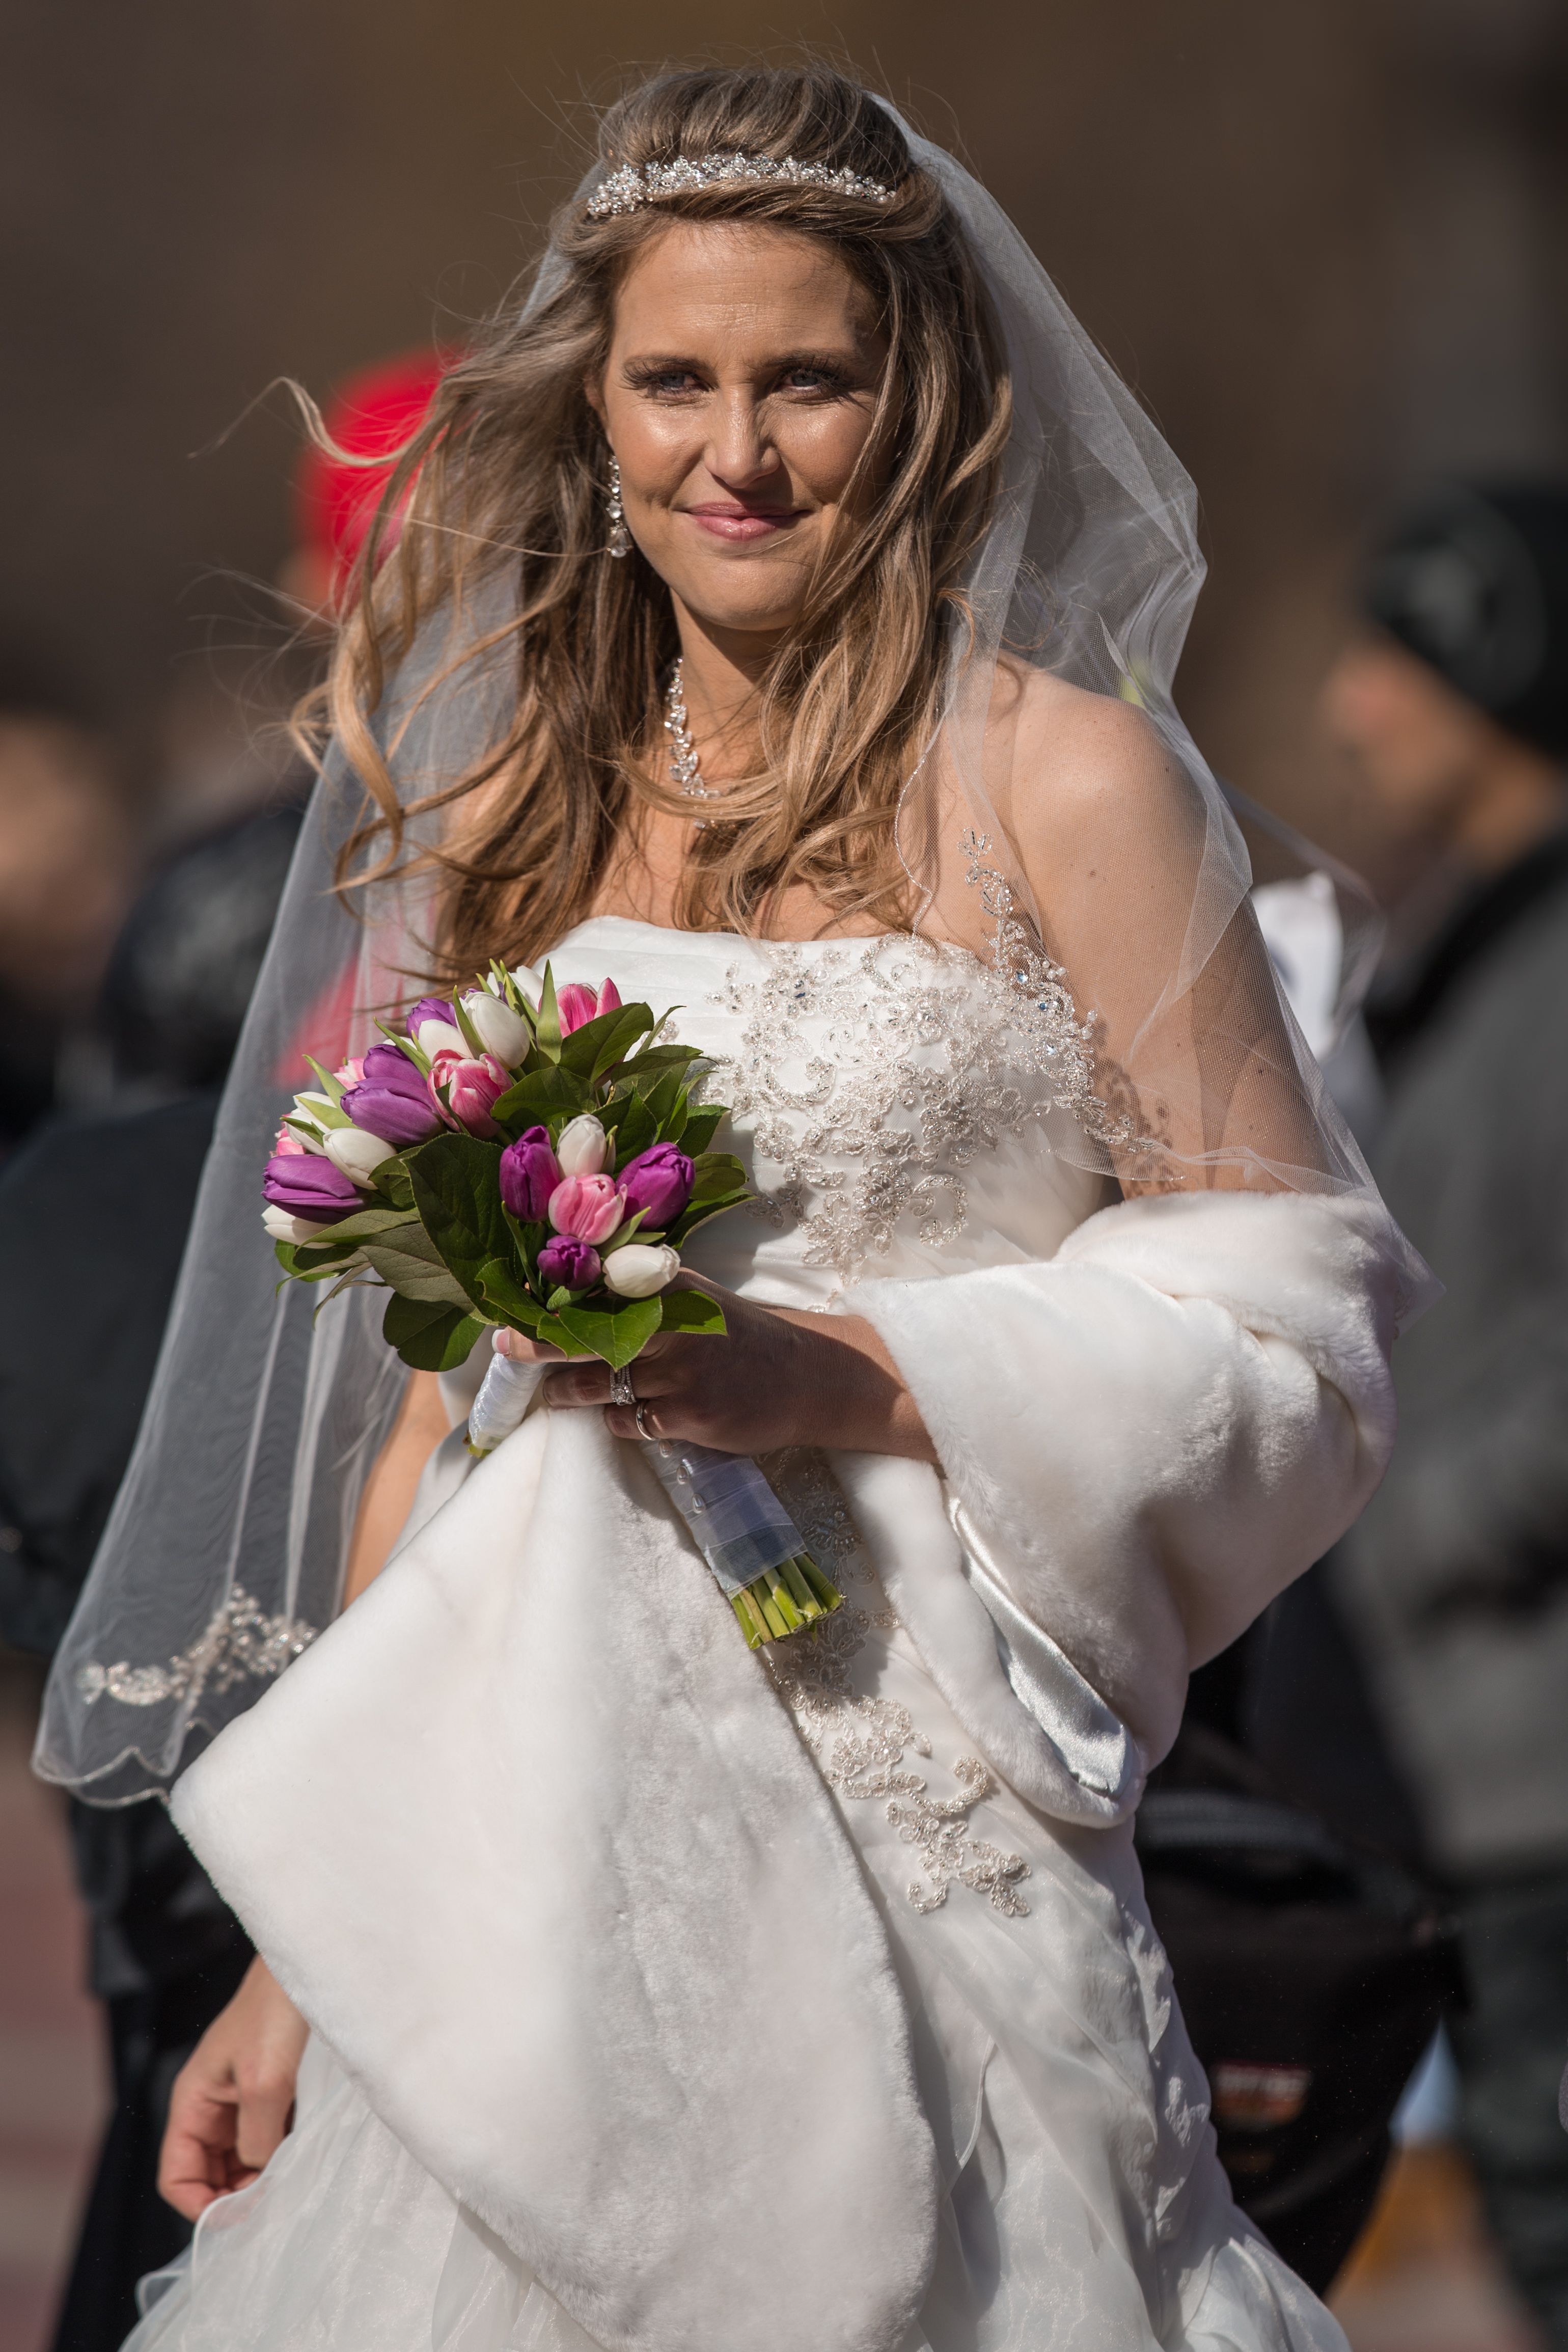 Bride in Gown NYC Central Park Photo